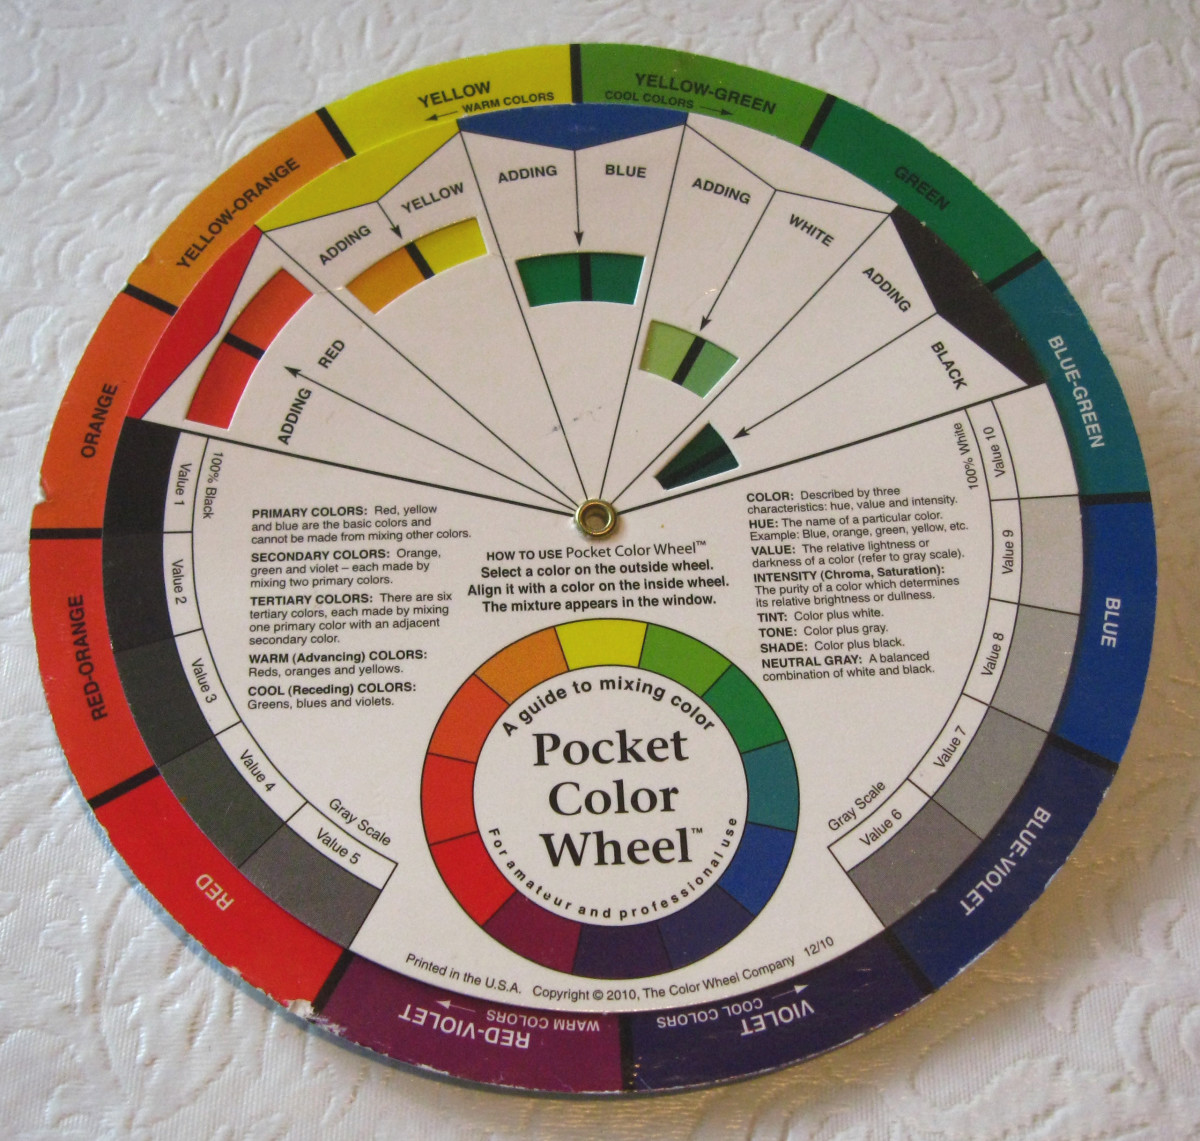 What Is The Color Wheel?